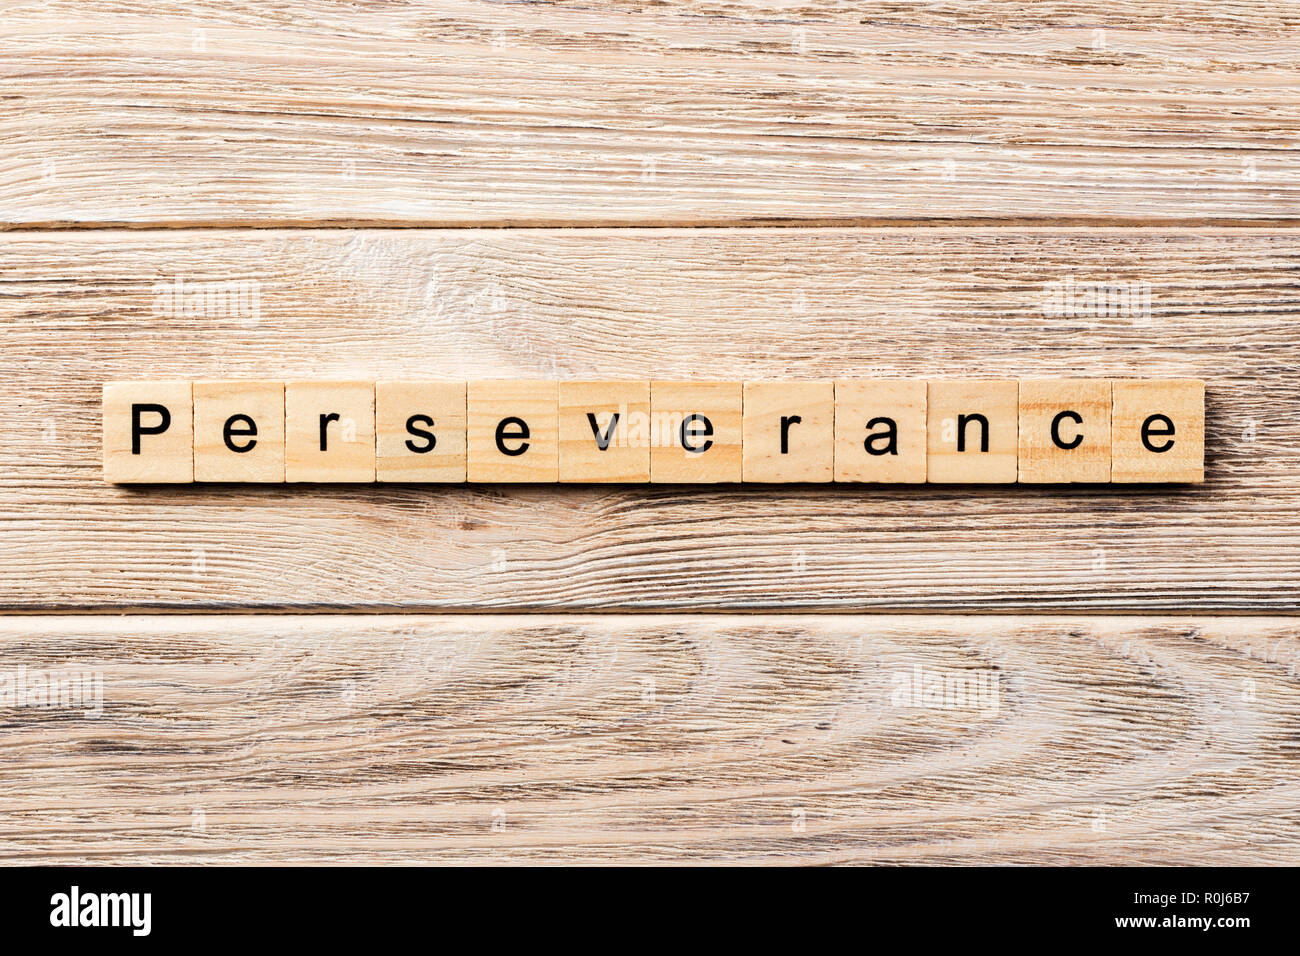 perseverance word written on wood block. perseverance text on table, concept. Stock Photo